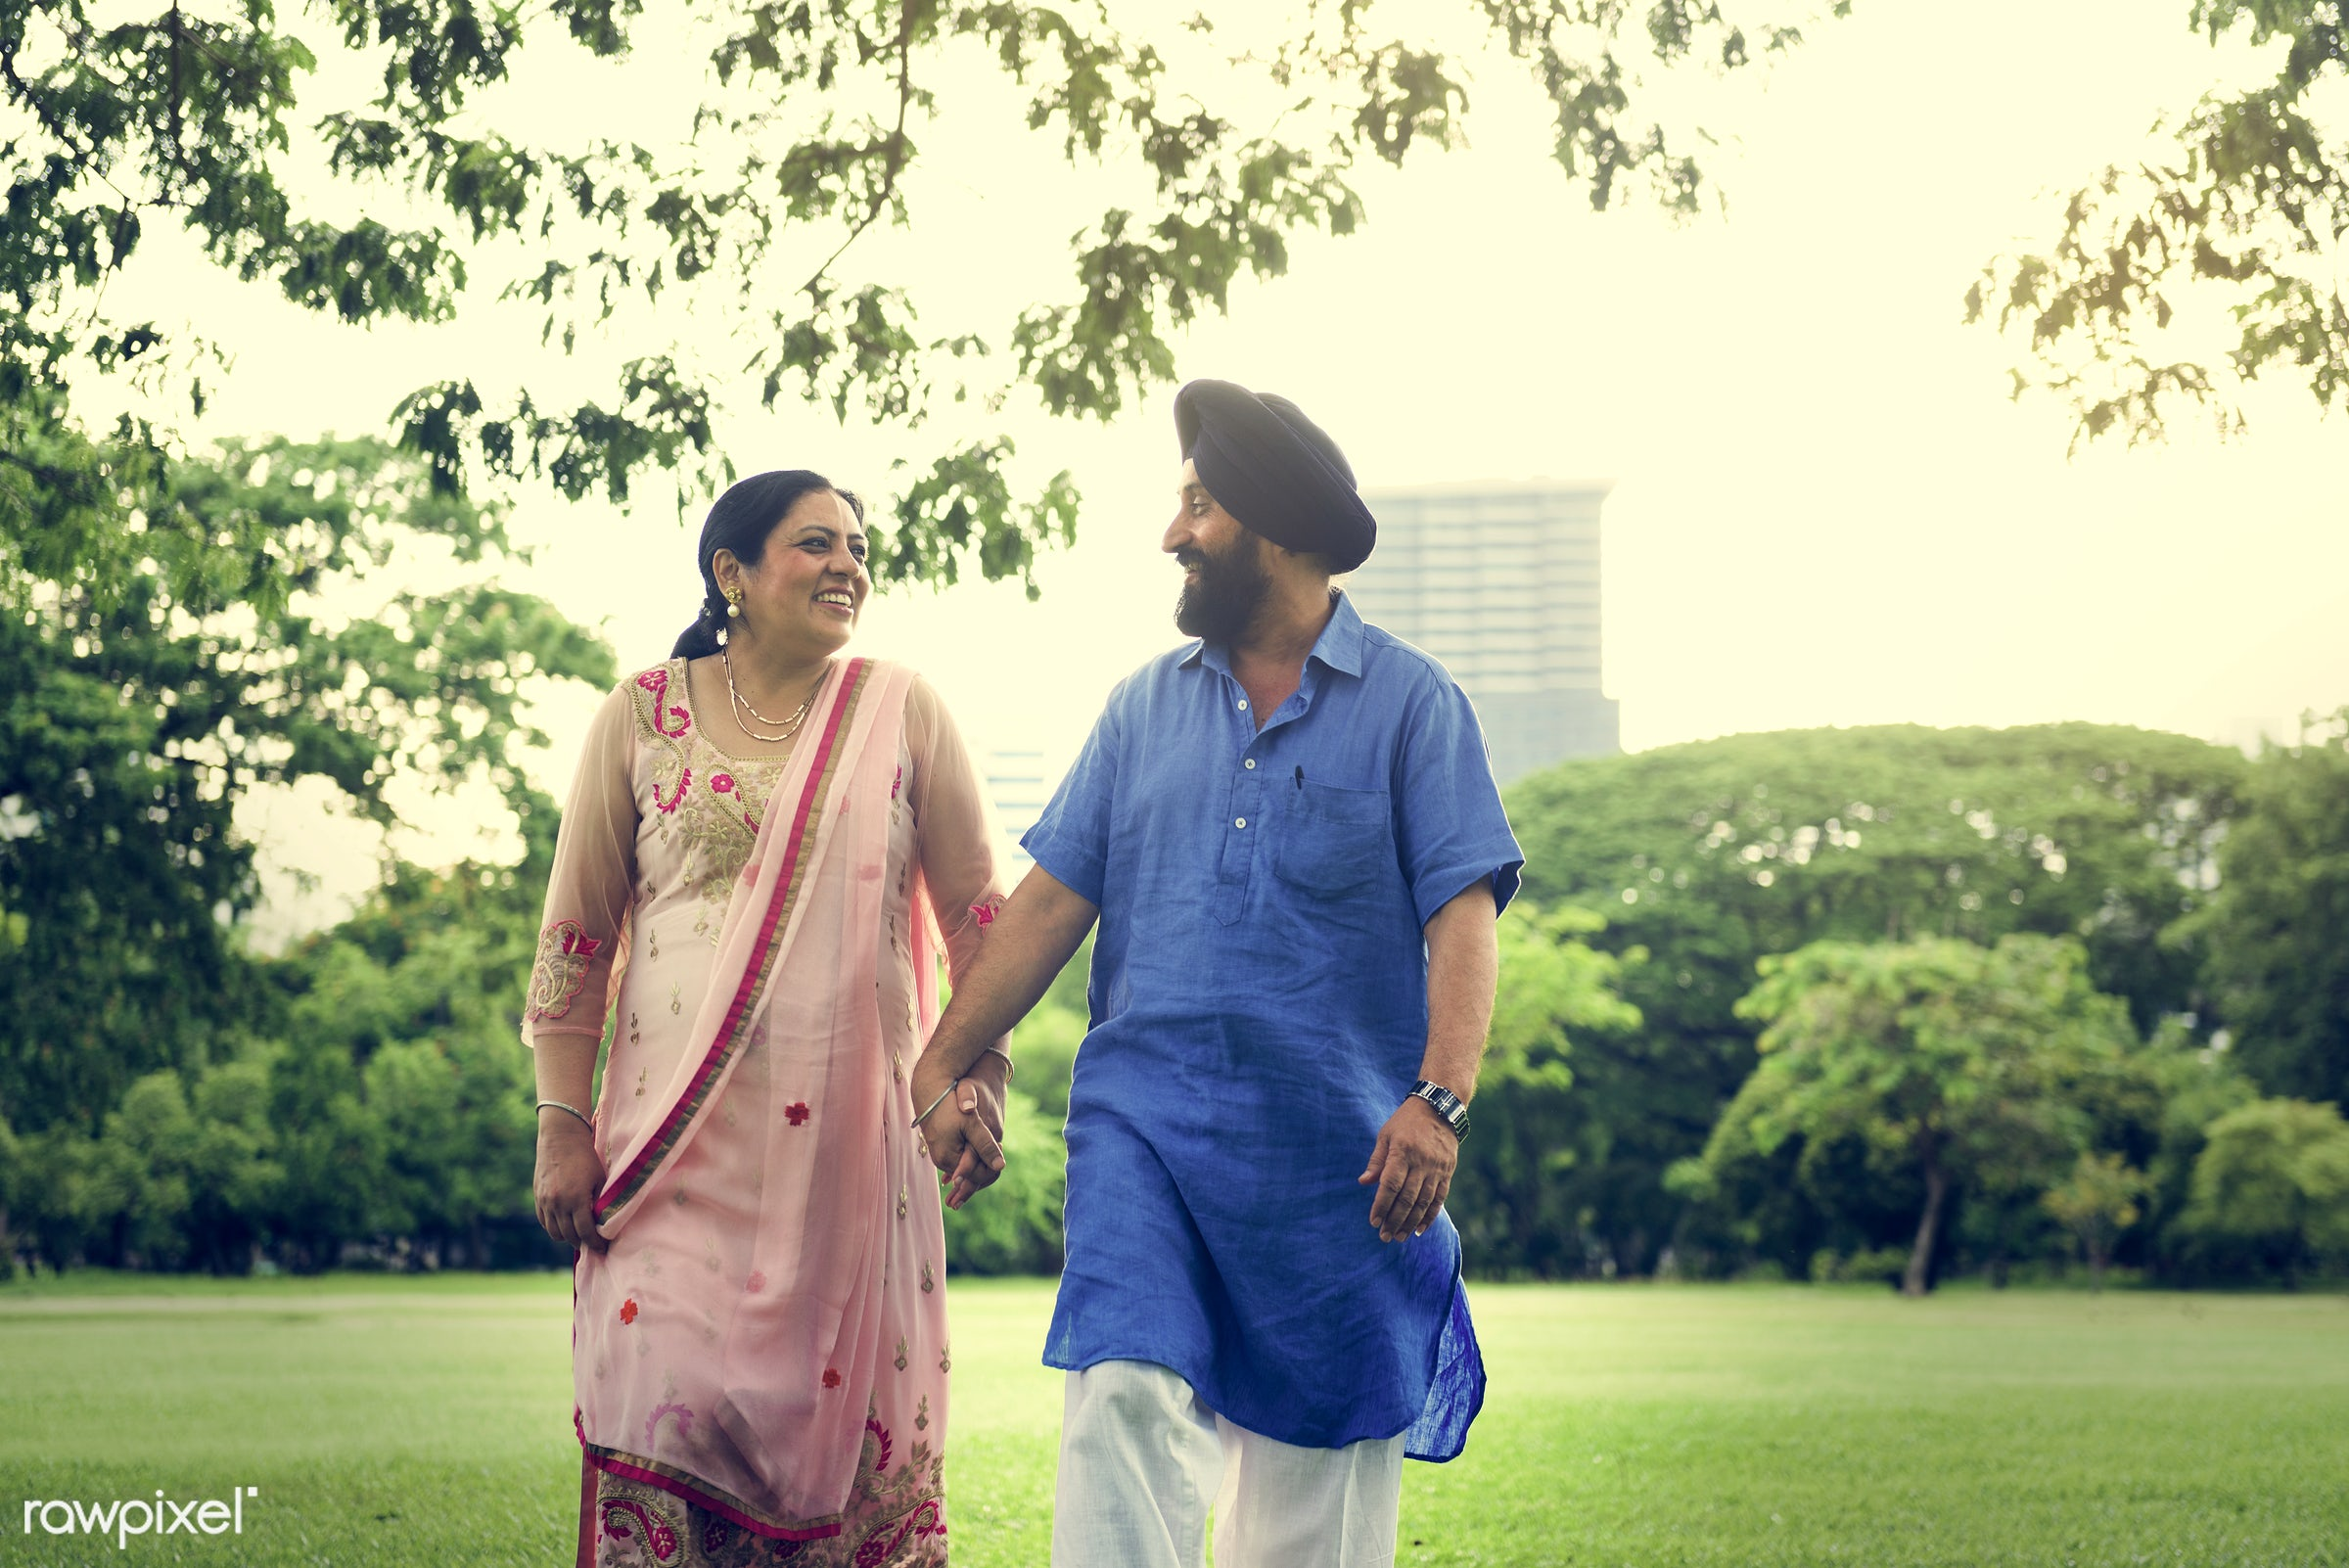 Indian Couple Love Care Concept - activity, adult, asian, bonding, care, casual, cheerful, couple, day, ethnicity, family,...